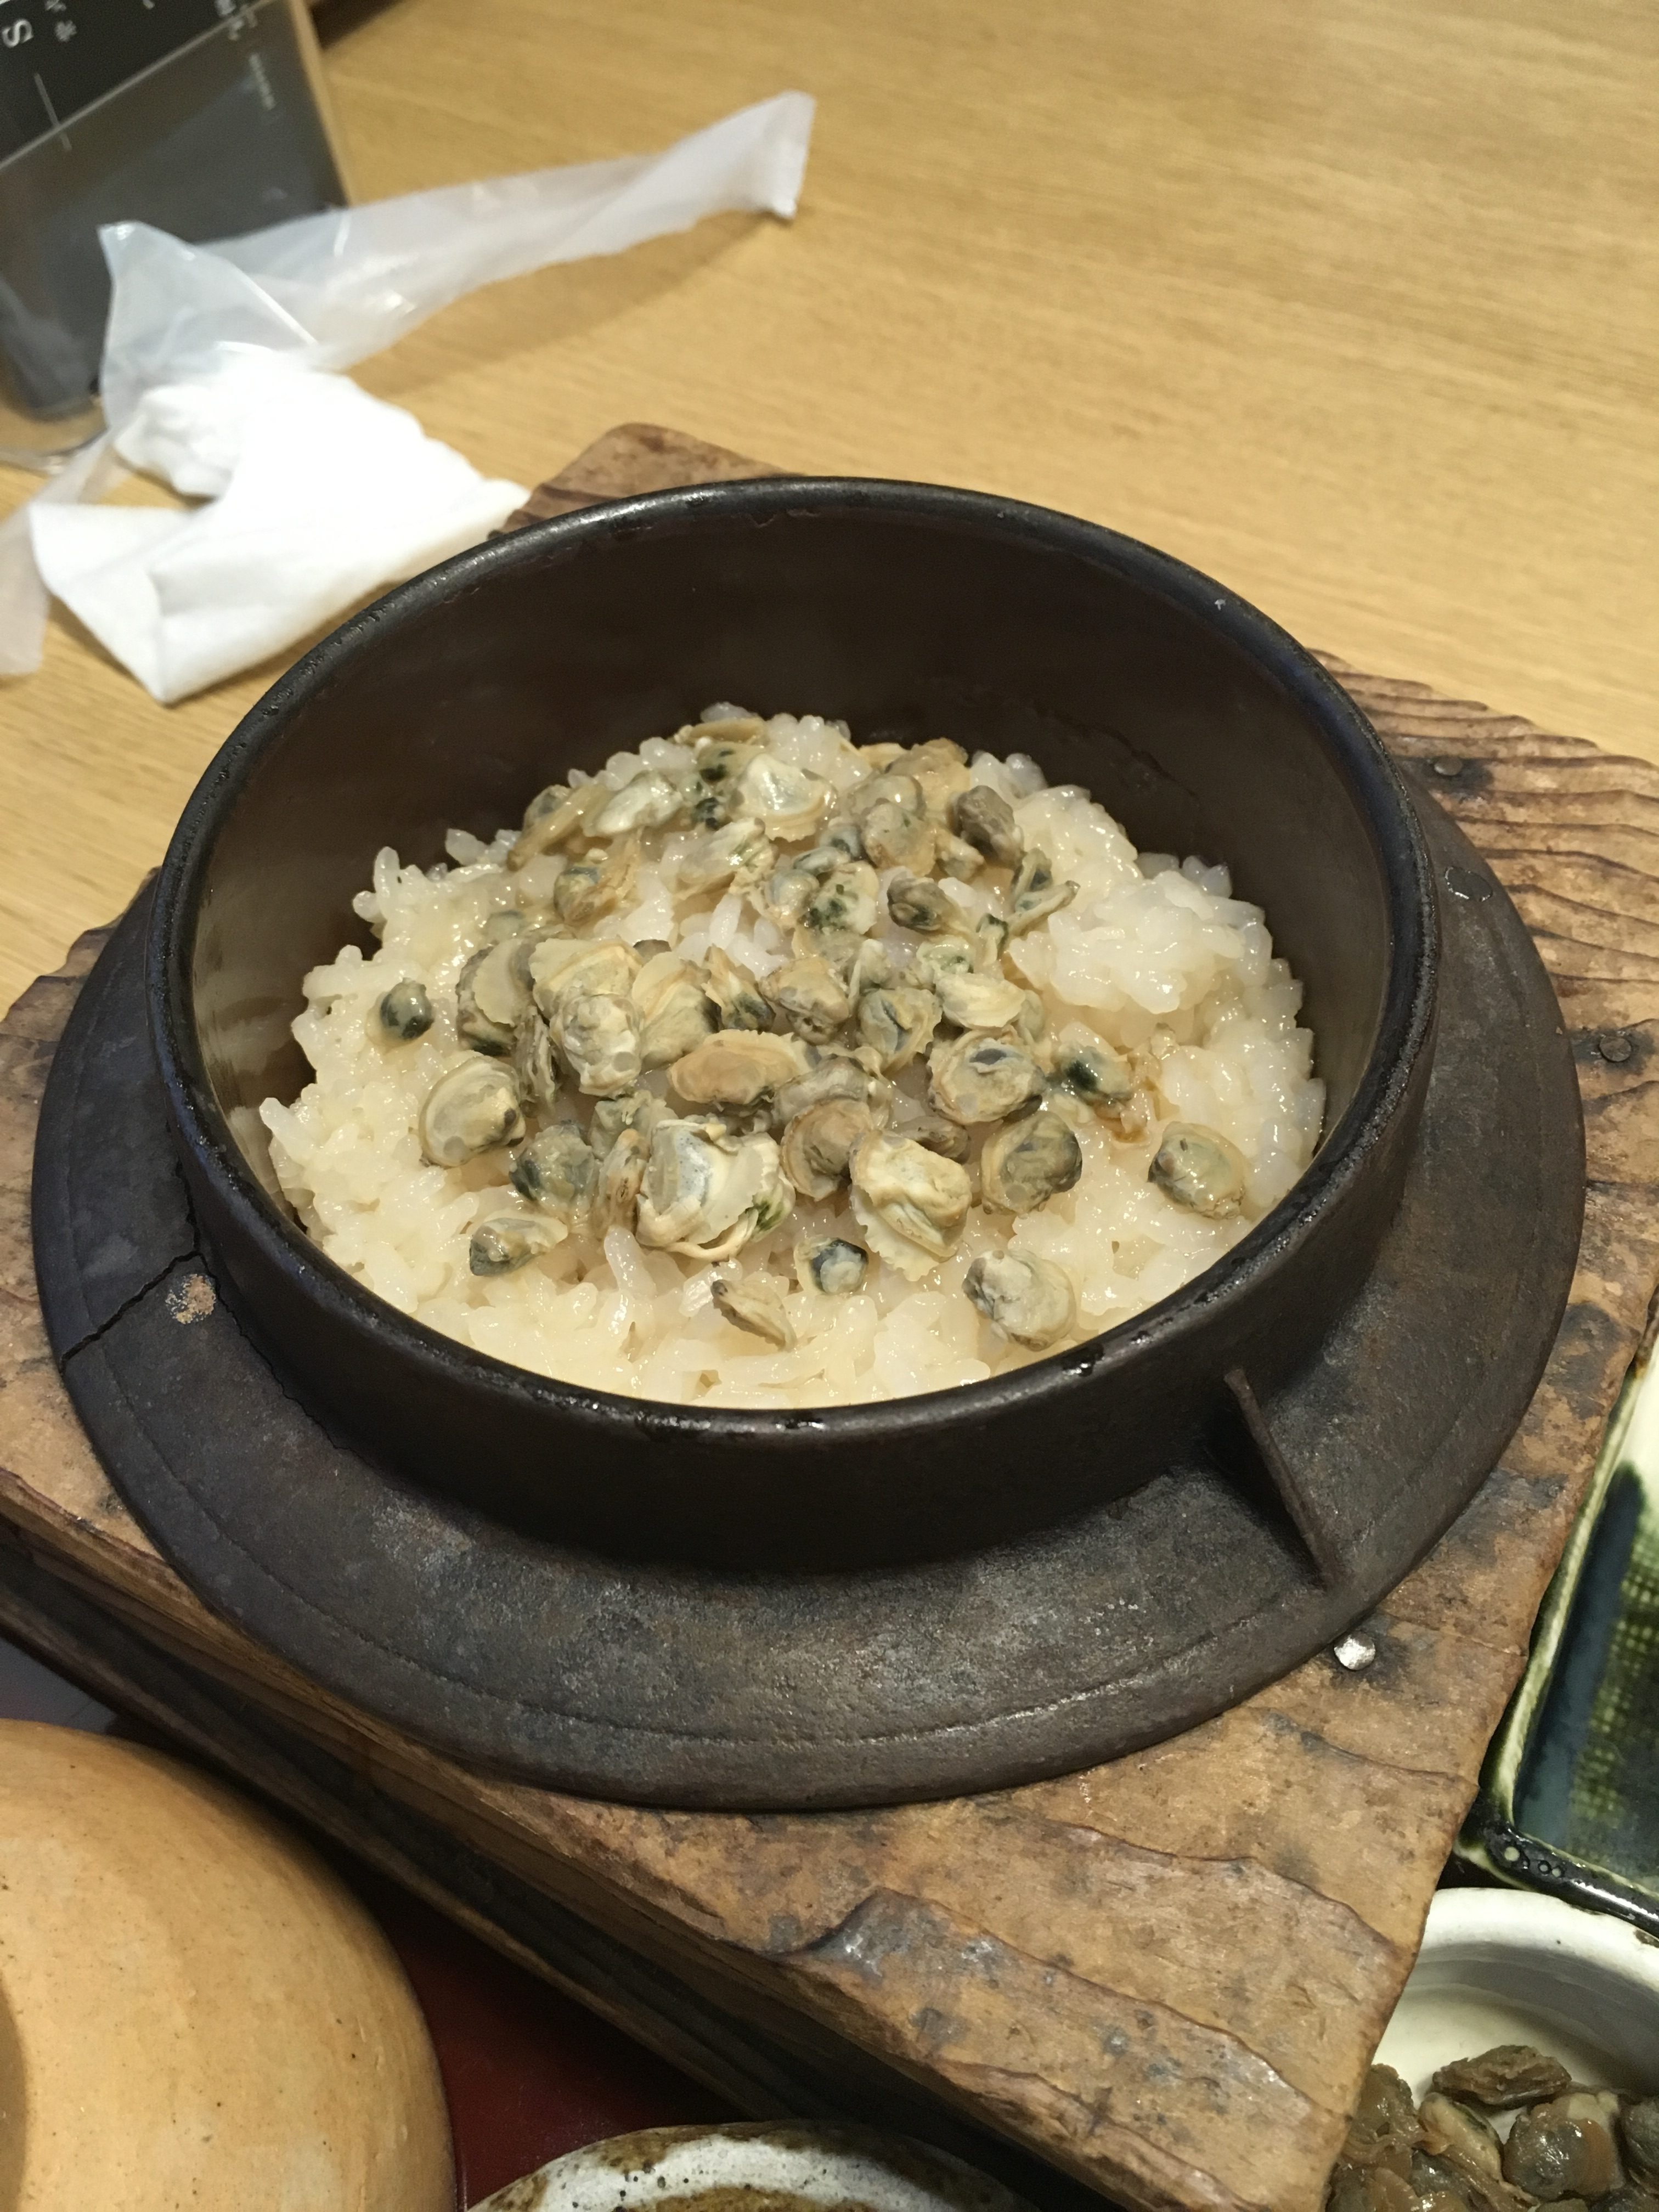 clam and rice dish from Koshu in Shiga Japan